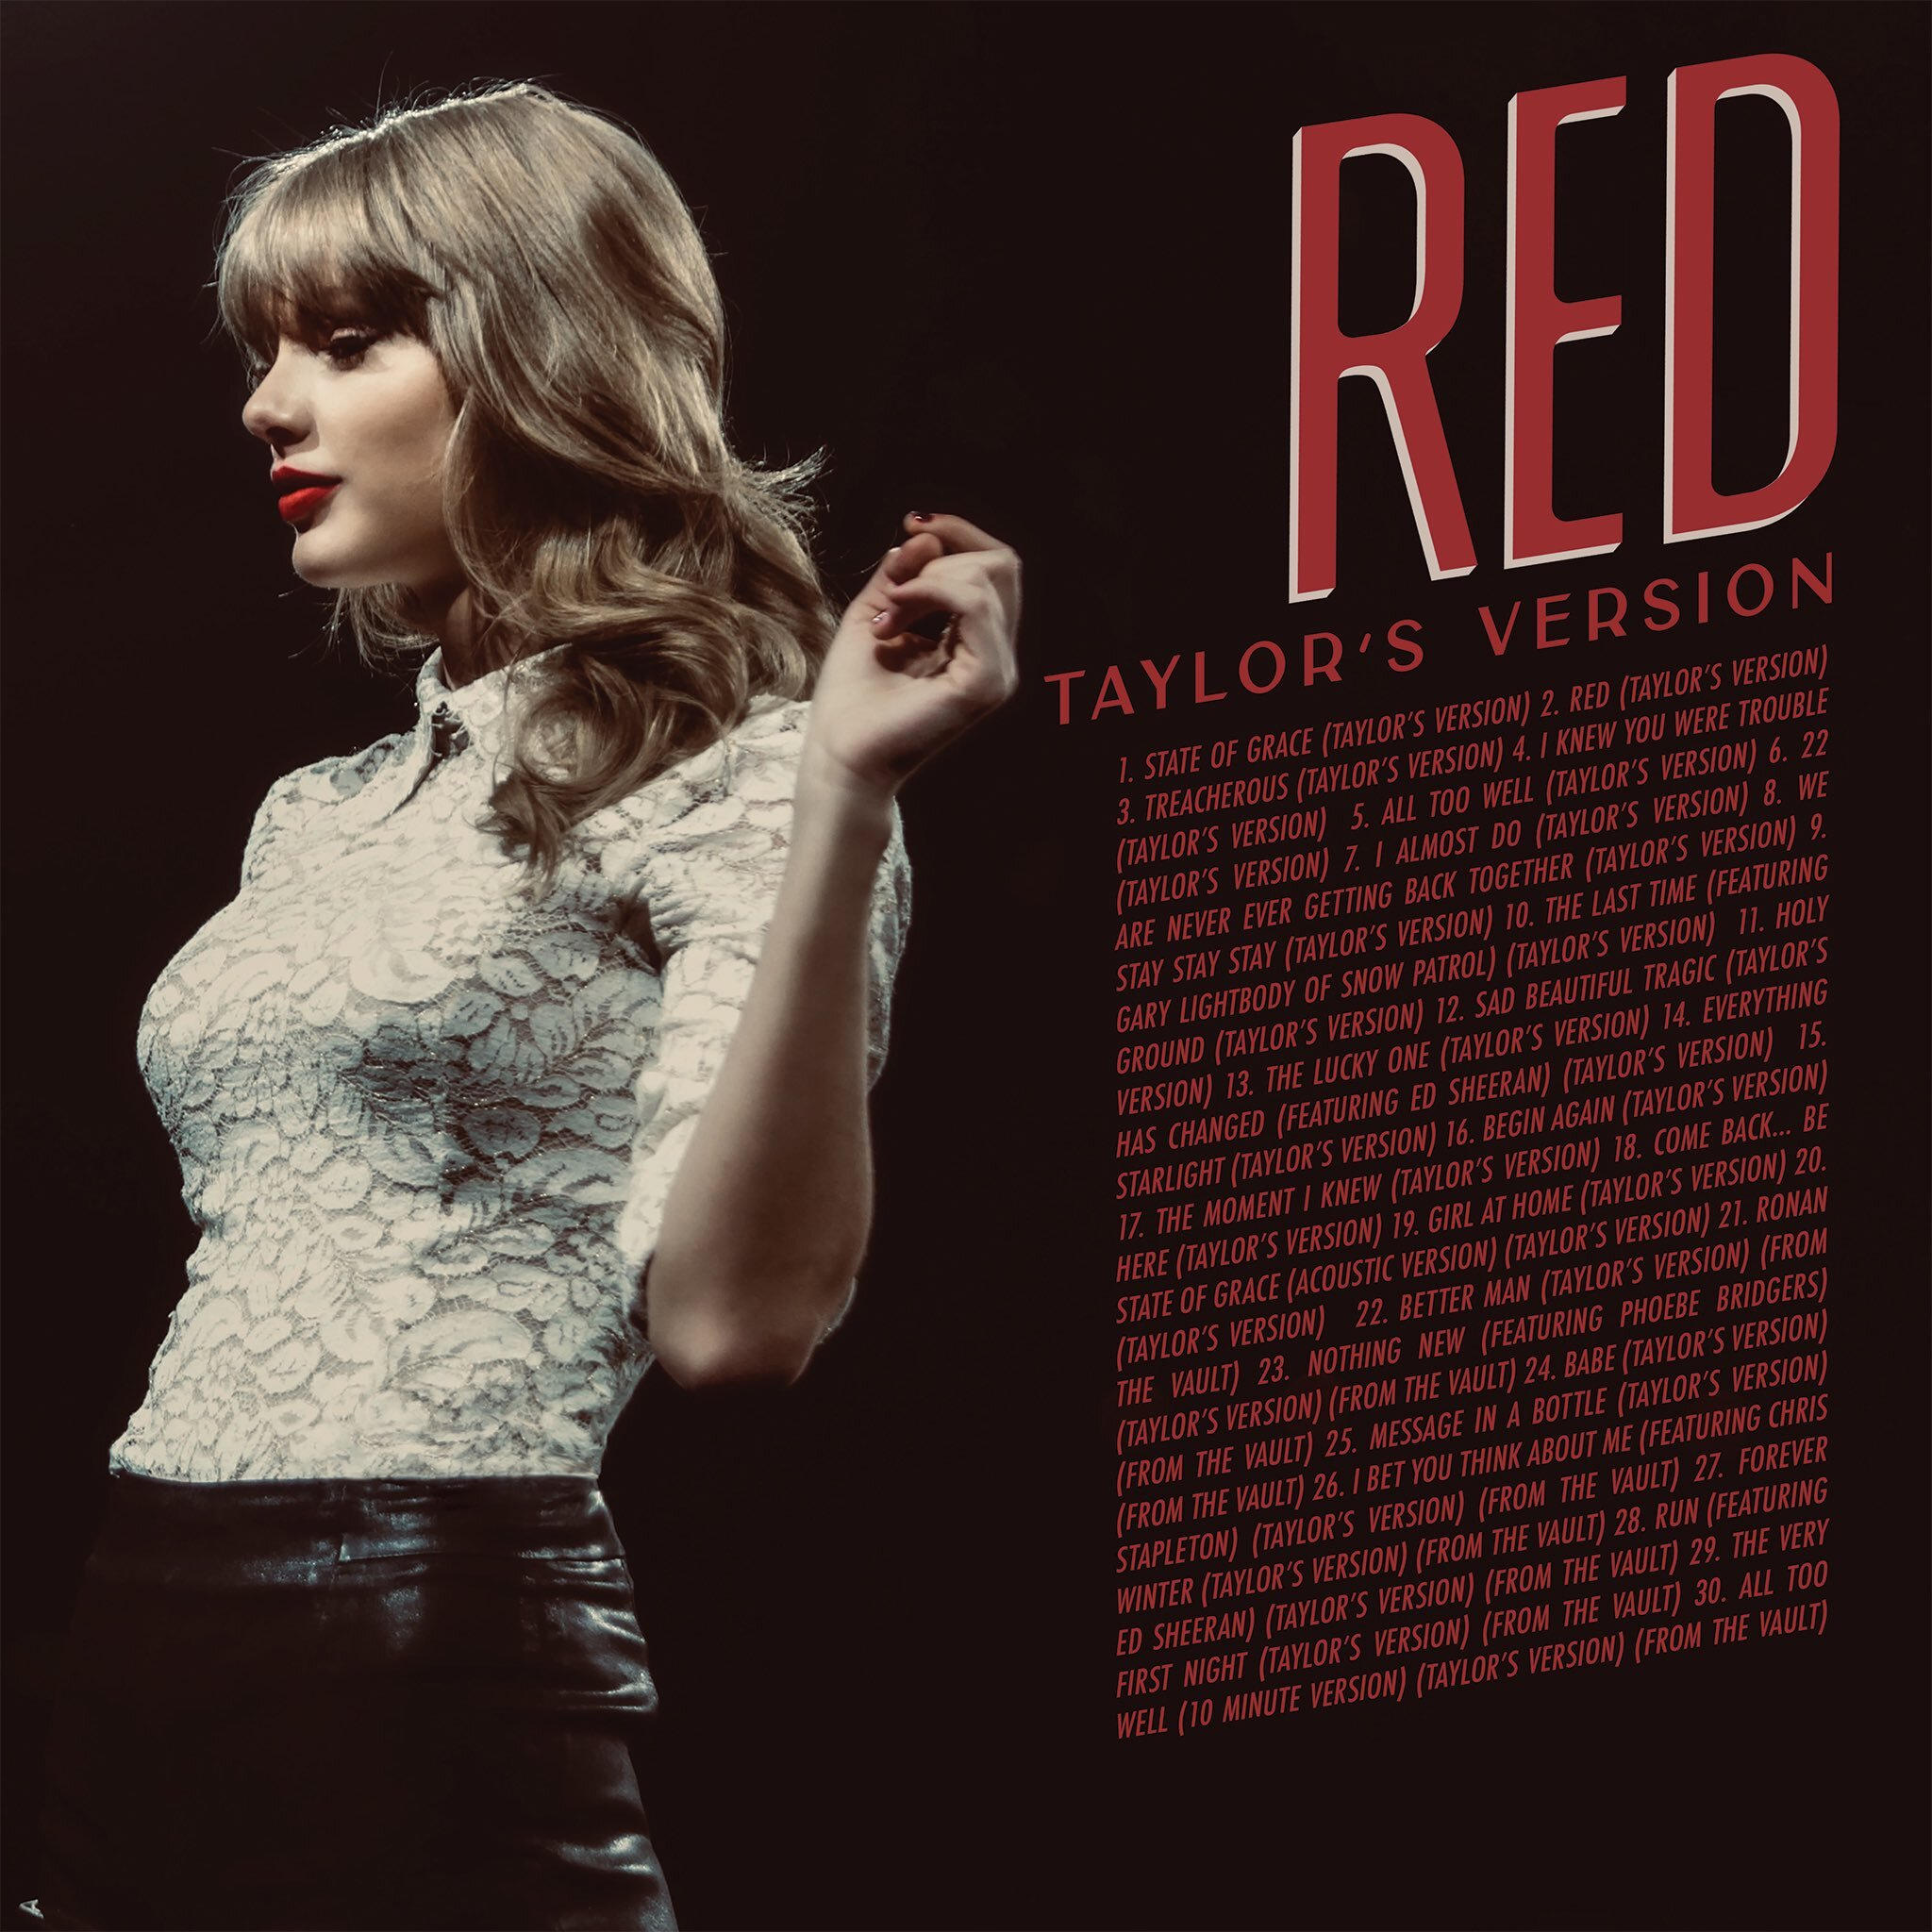 RED (Taylor's Version) Back Cover (2021)